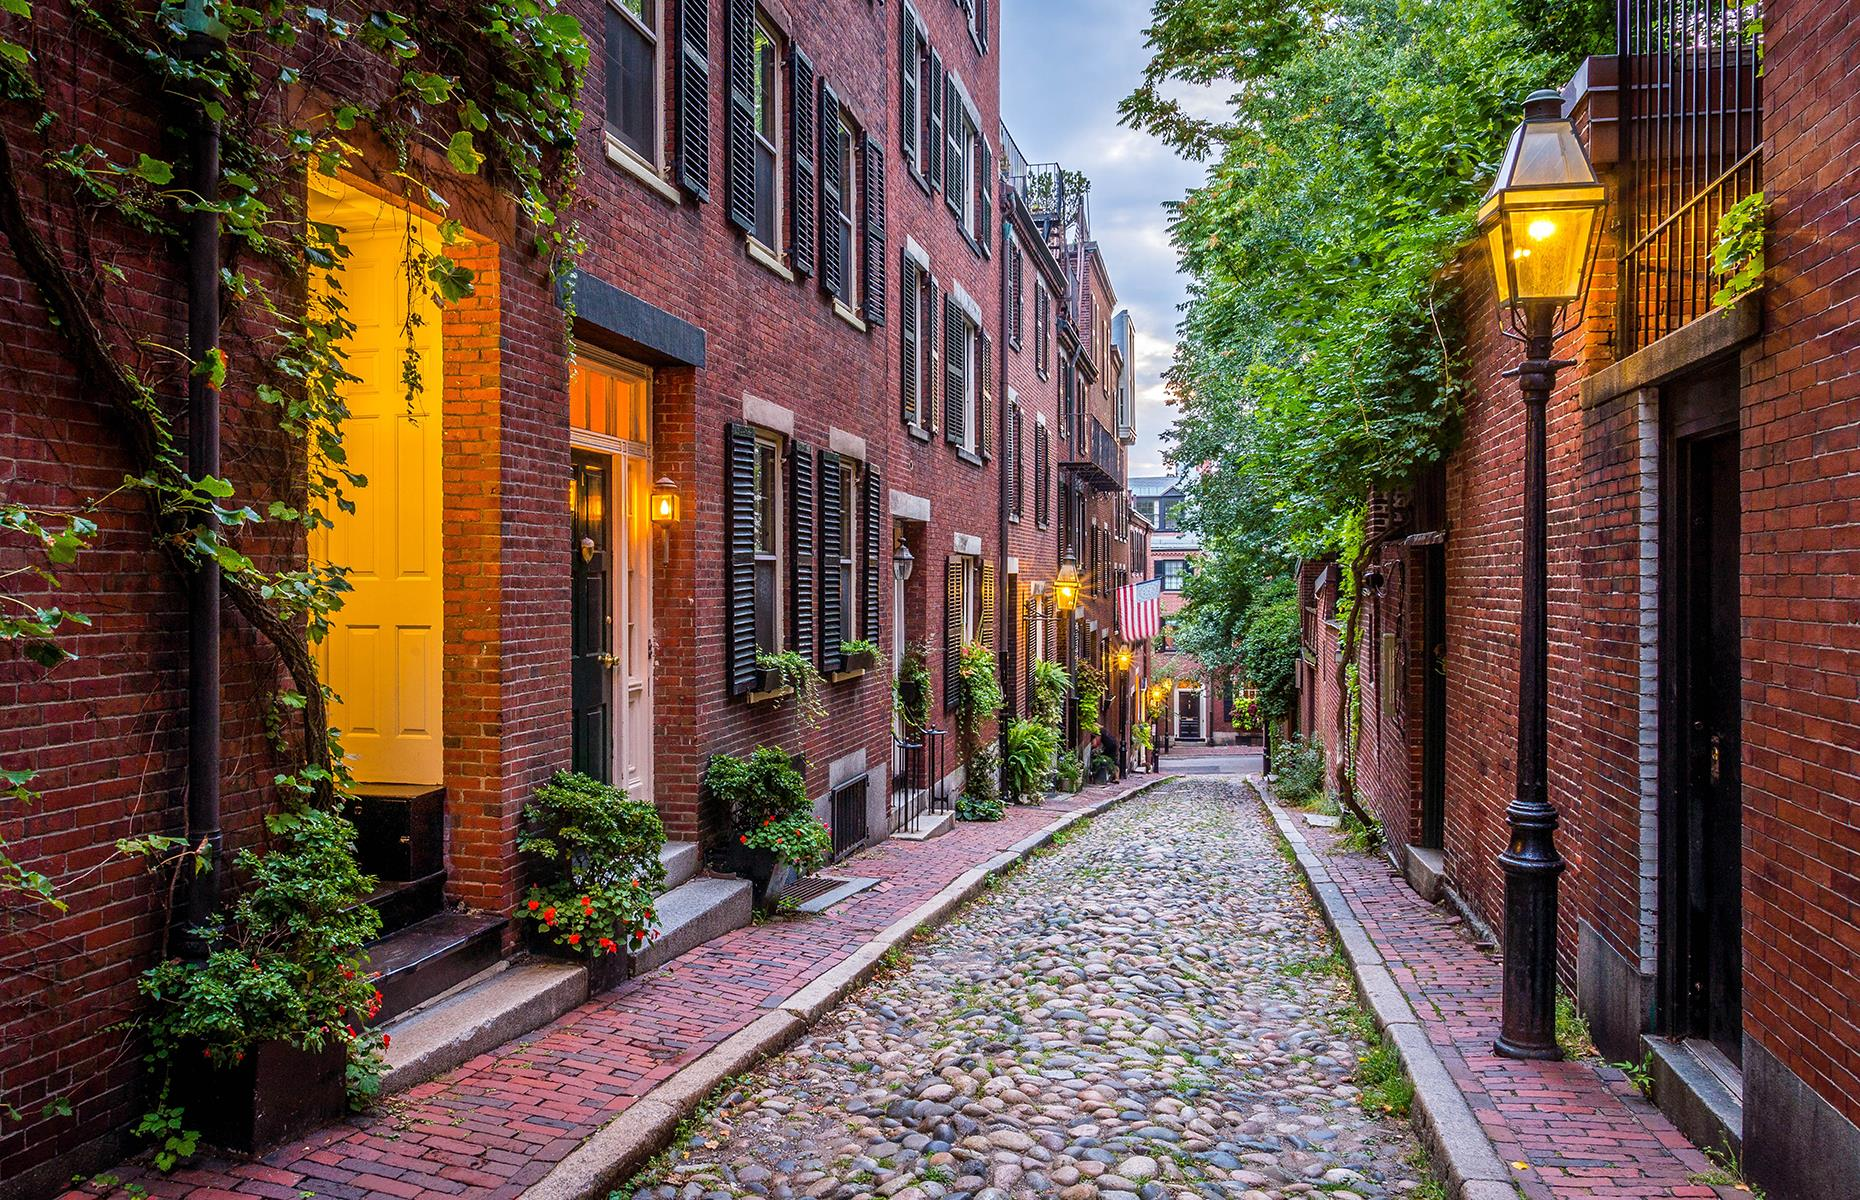 Slide 2 of 31: Located in Boston's historic Beacon Hill neighborhood, Acorn Street is often said to be the most photographed street in the US. Wealthy tradesmen and artists lived here in the 19th century, and today it's one of Boston's most famous attractions, instantly recognizable thanks to its Federal-style brick rowhouses and gas lanterns.